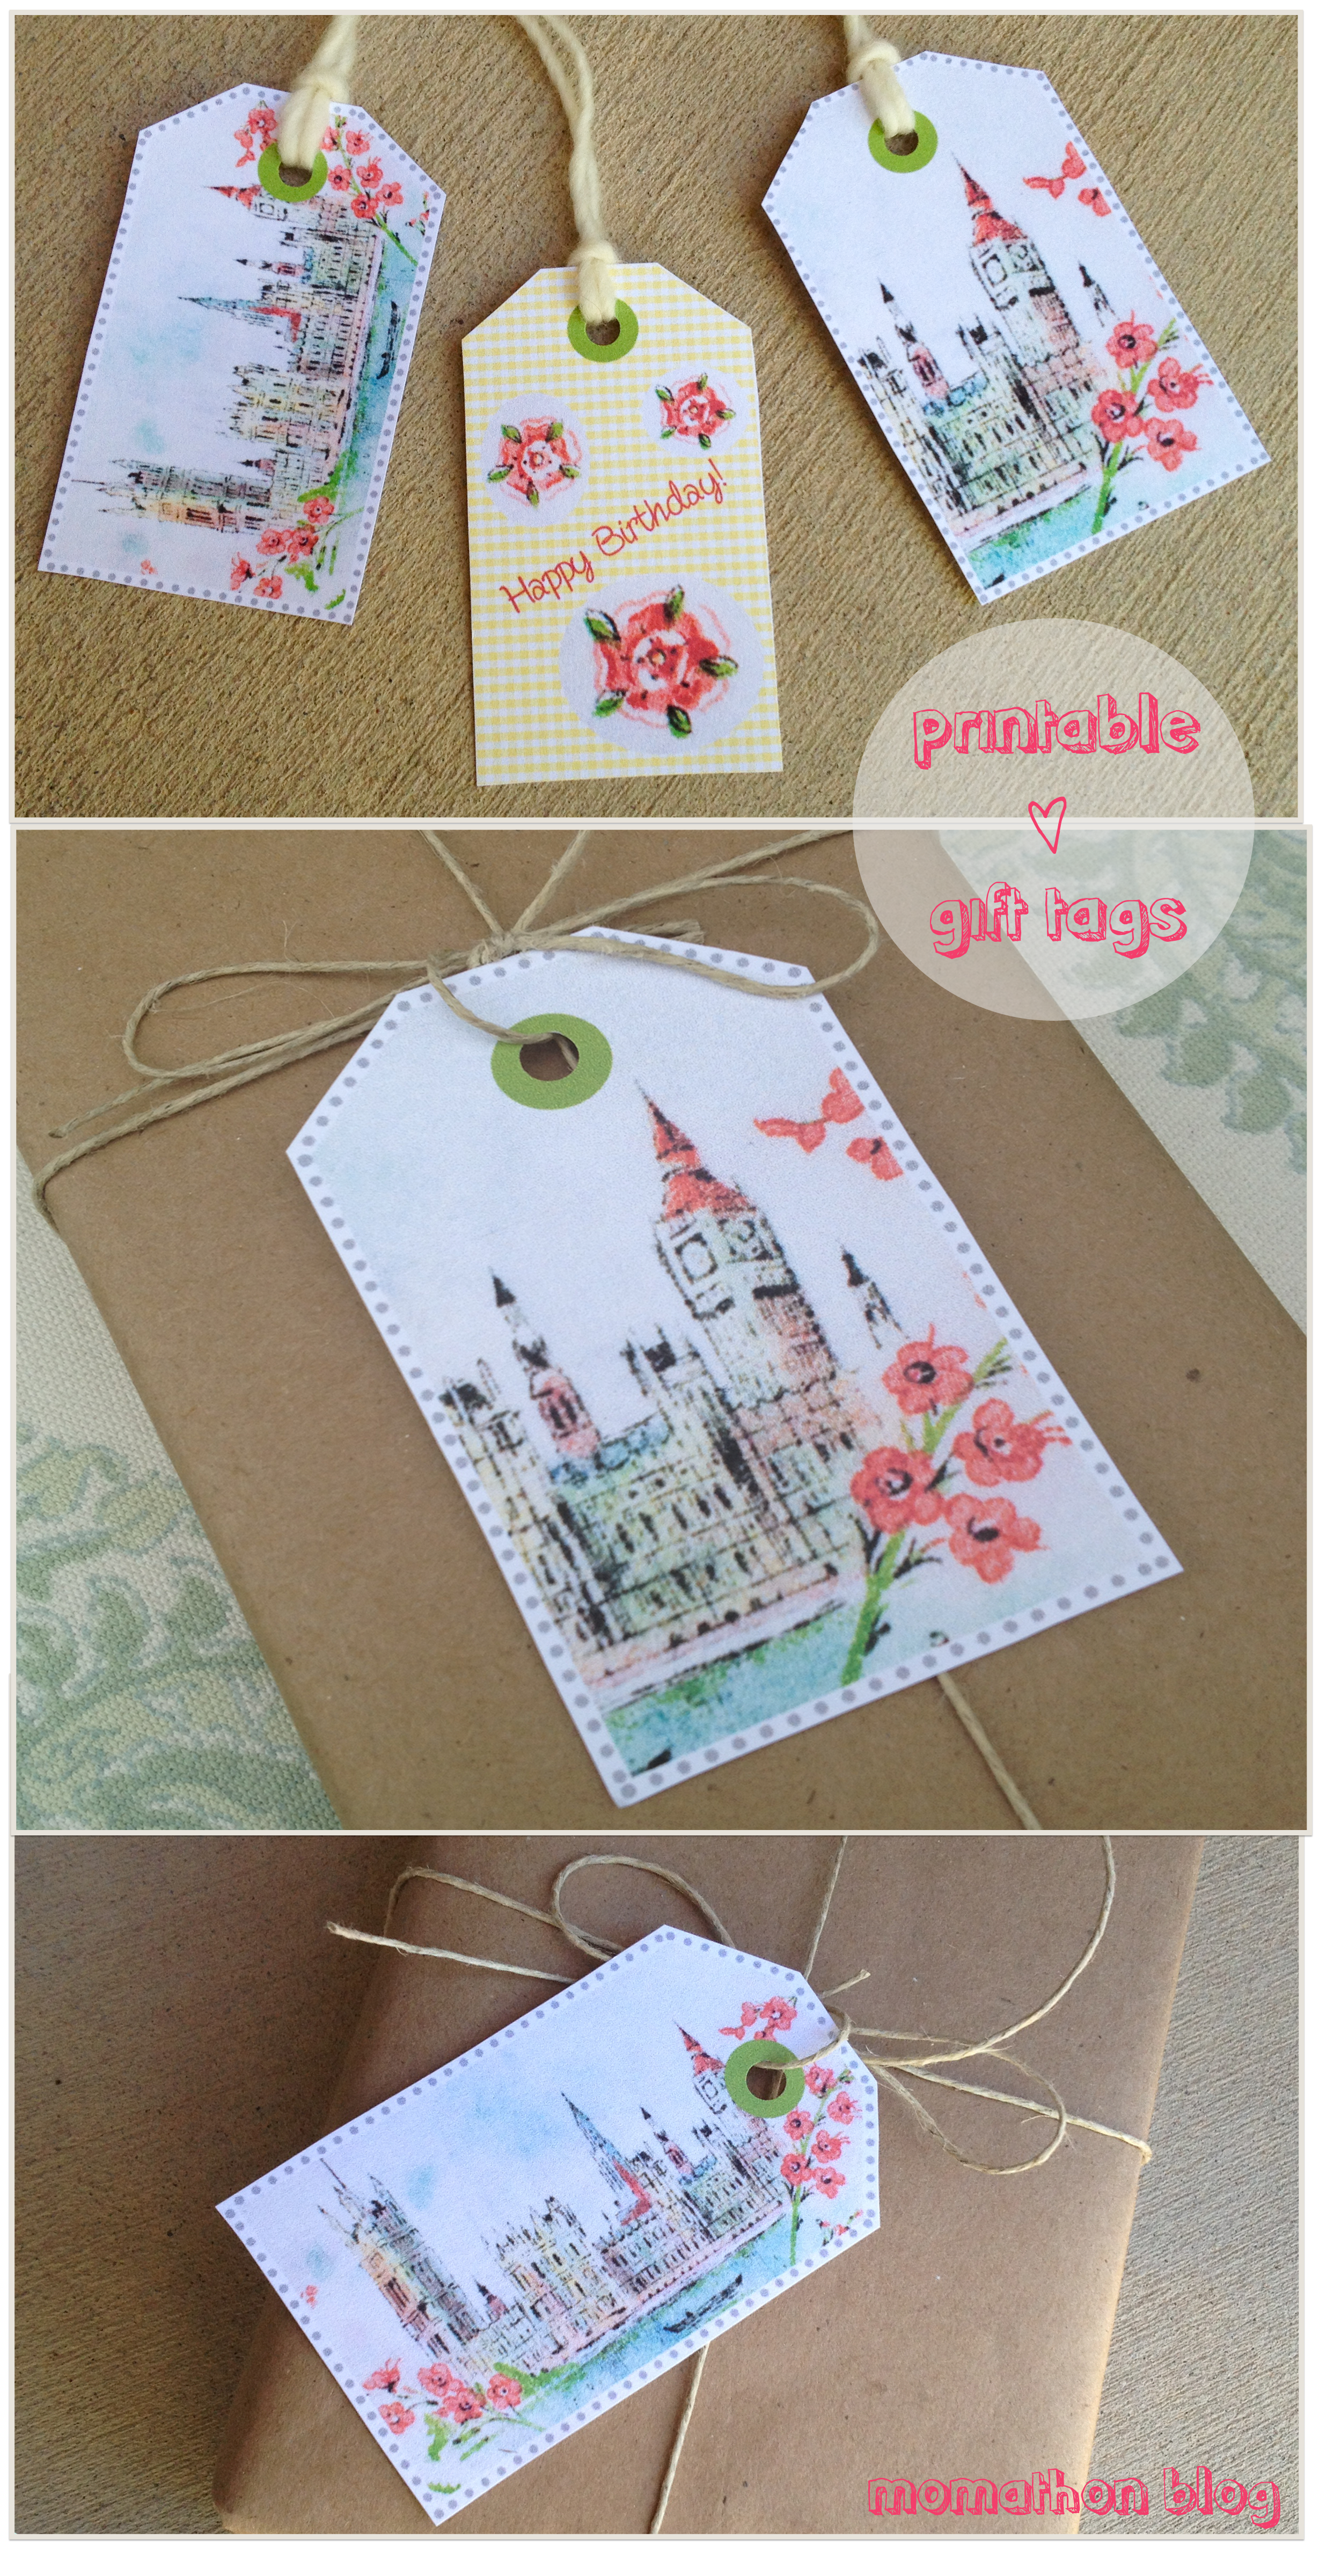 Momathon blog free printable gift tags vintage fabric the downloadable pdf see link below contains 1 page that includes 6 tags2 tags of each of the 3 designs shown above negle Image collections